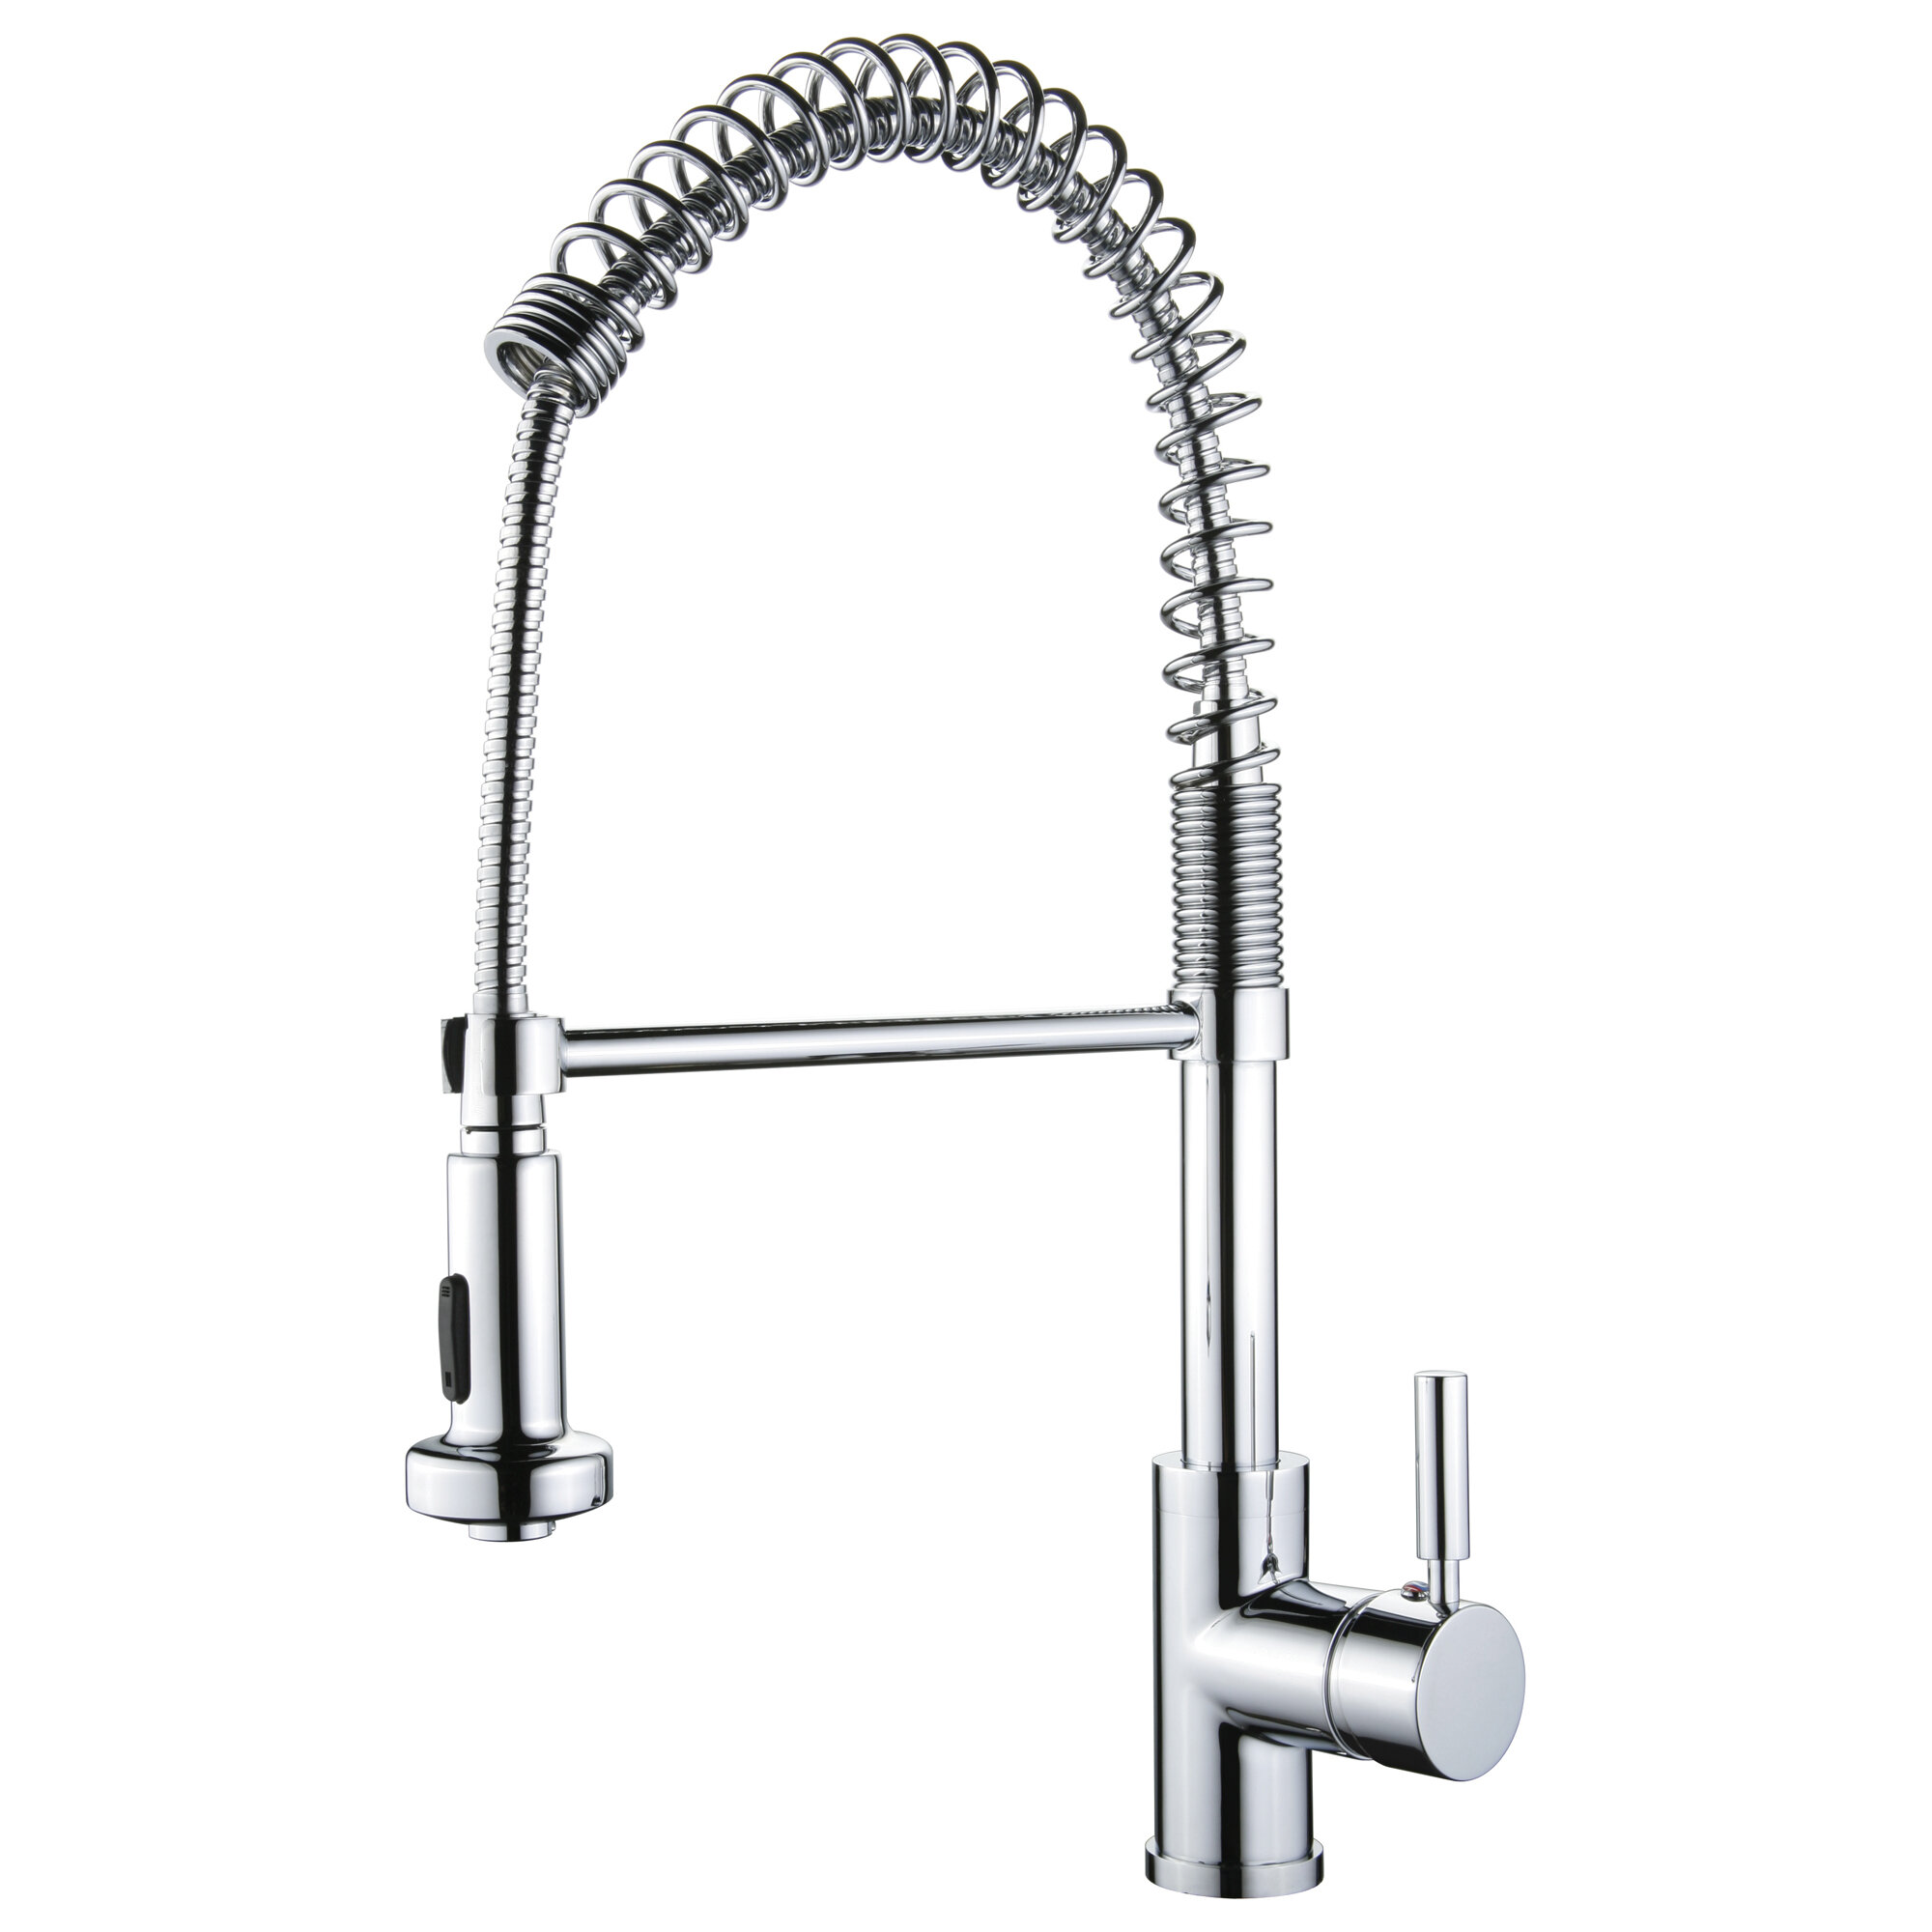 top design pull kpf faucet out necessities faucets blog yliving kitchen